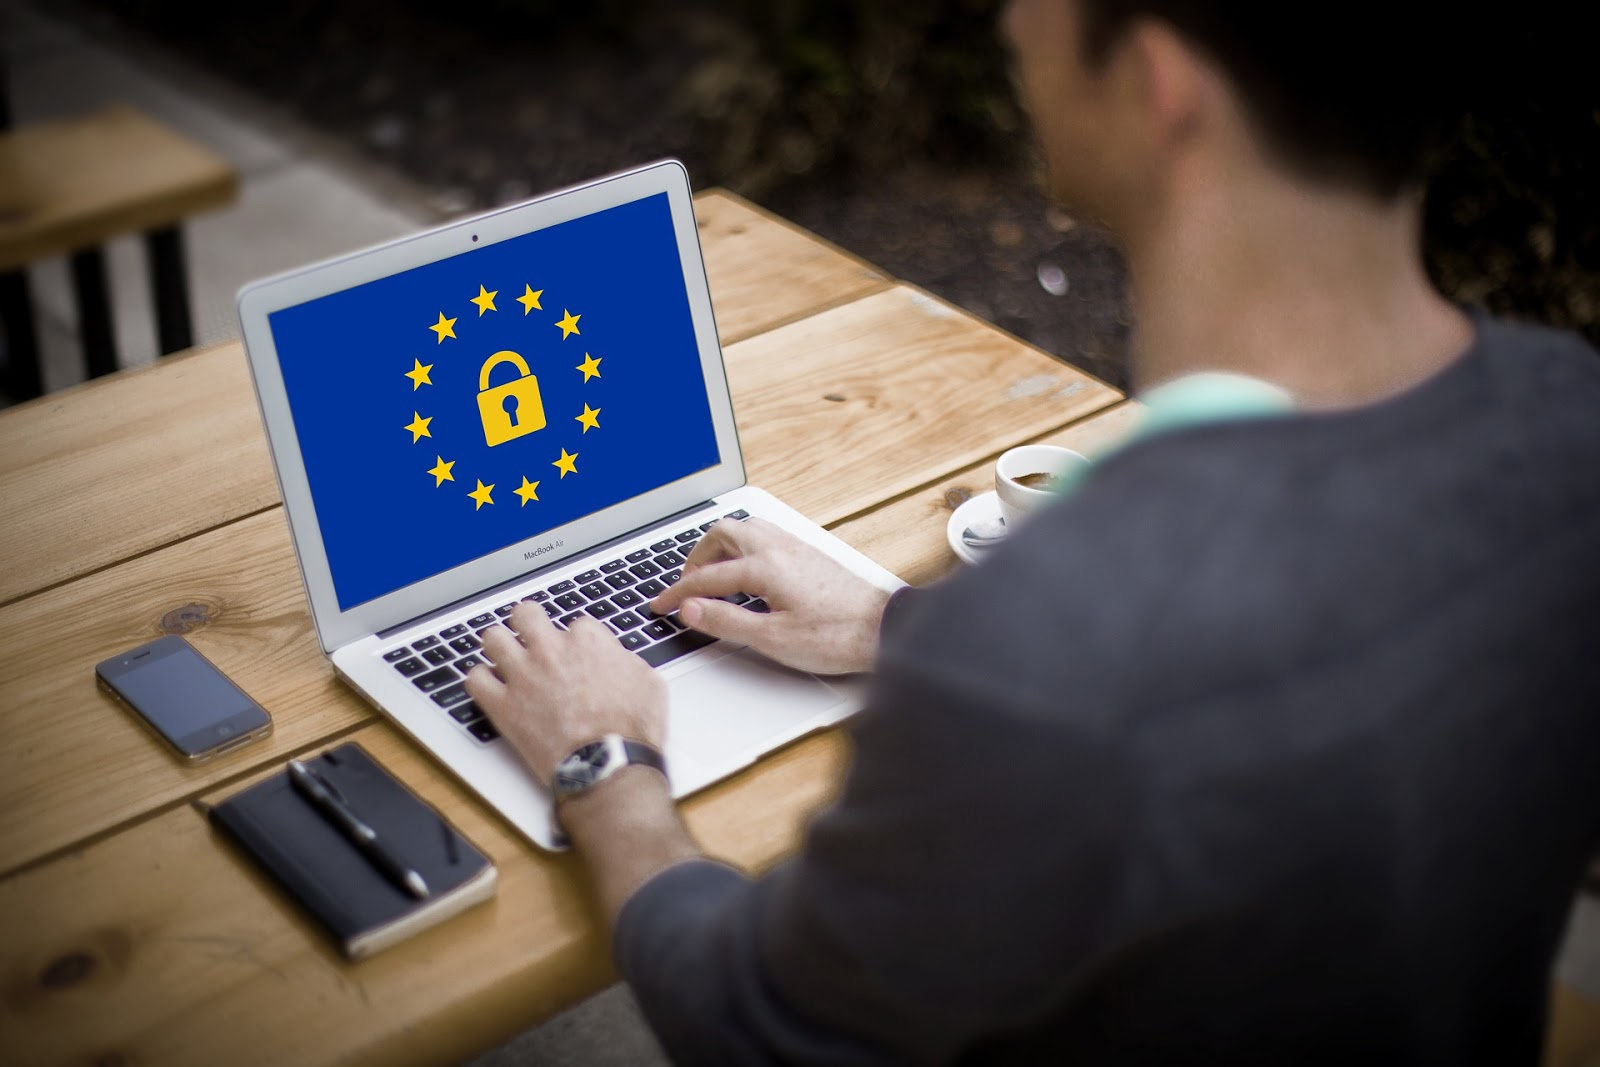 GDPR and computer